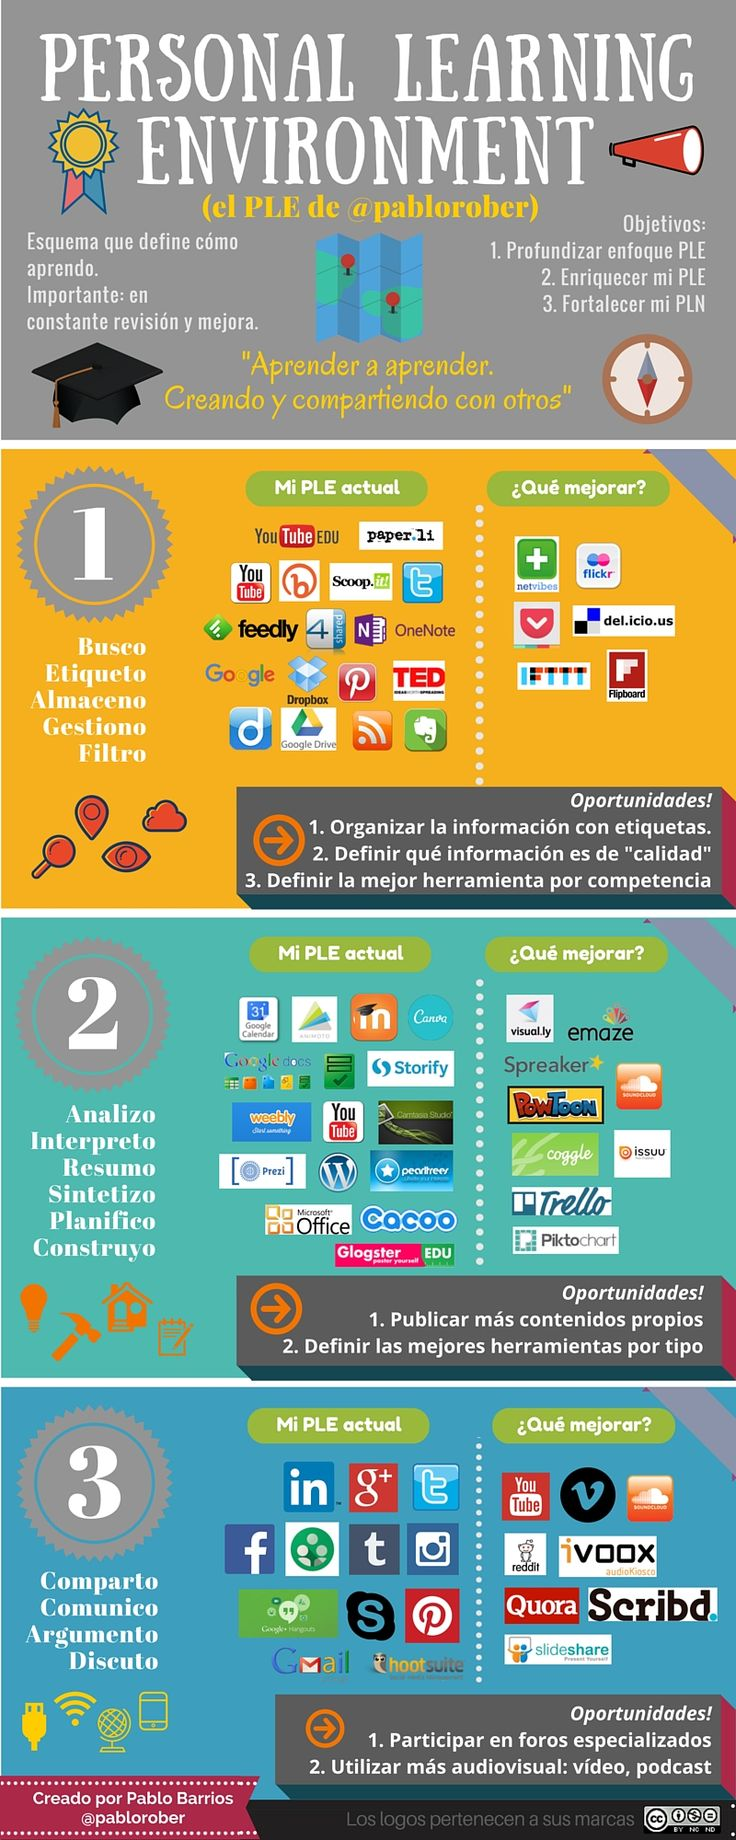 41 best TIC images on Pinterest | Searching, Learning and Social media